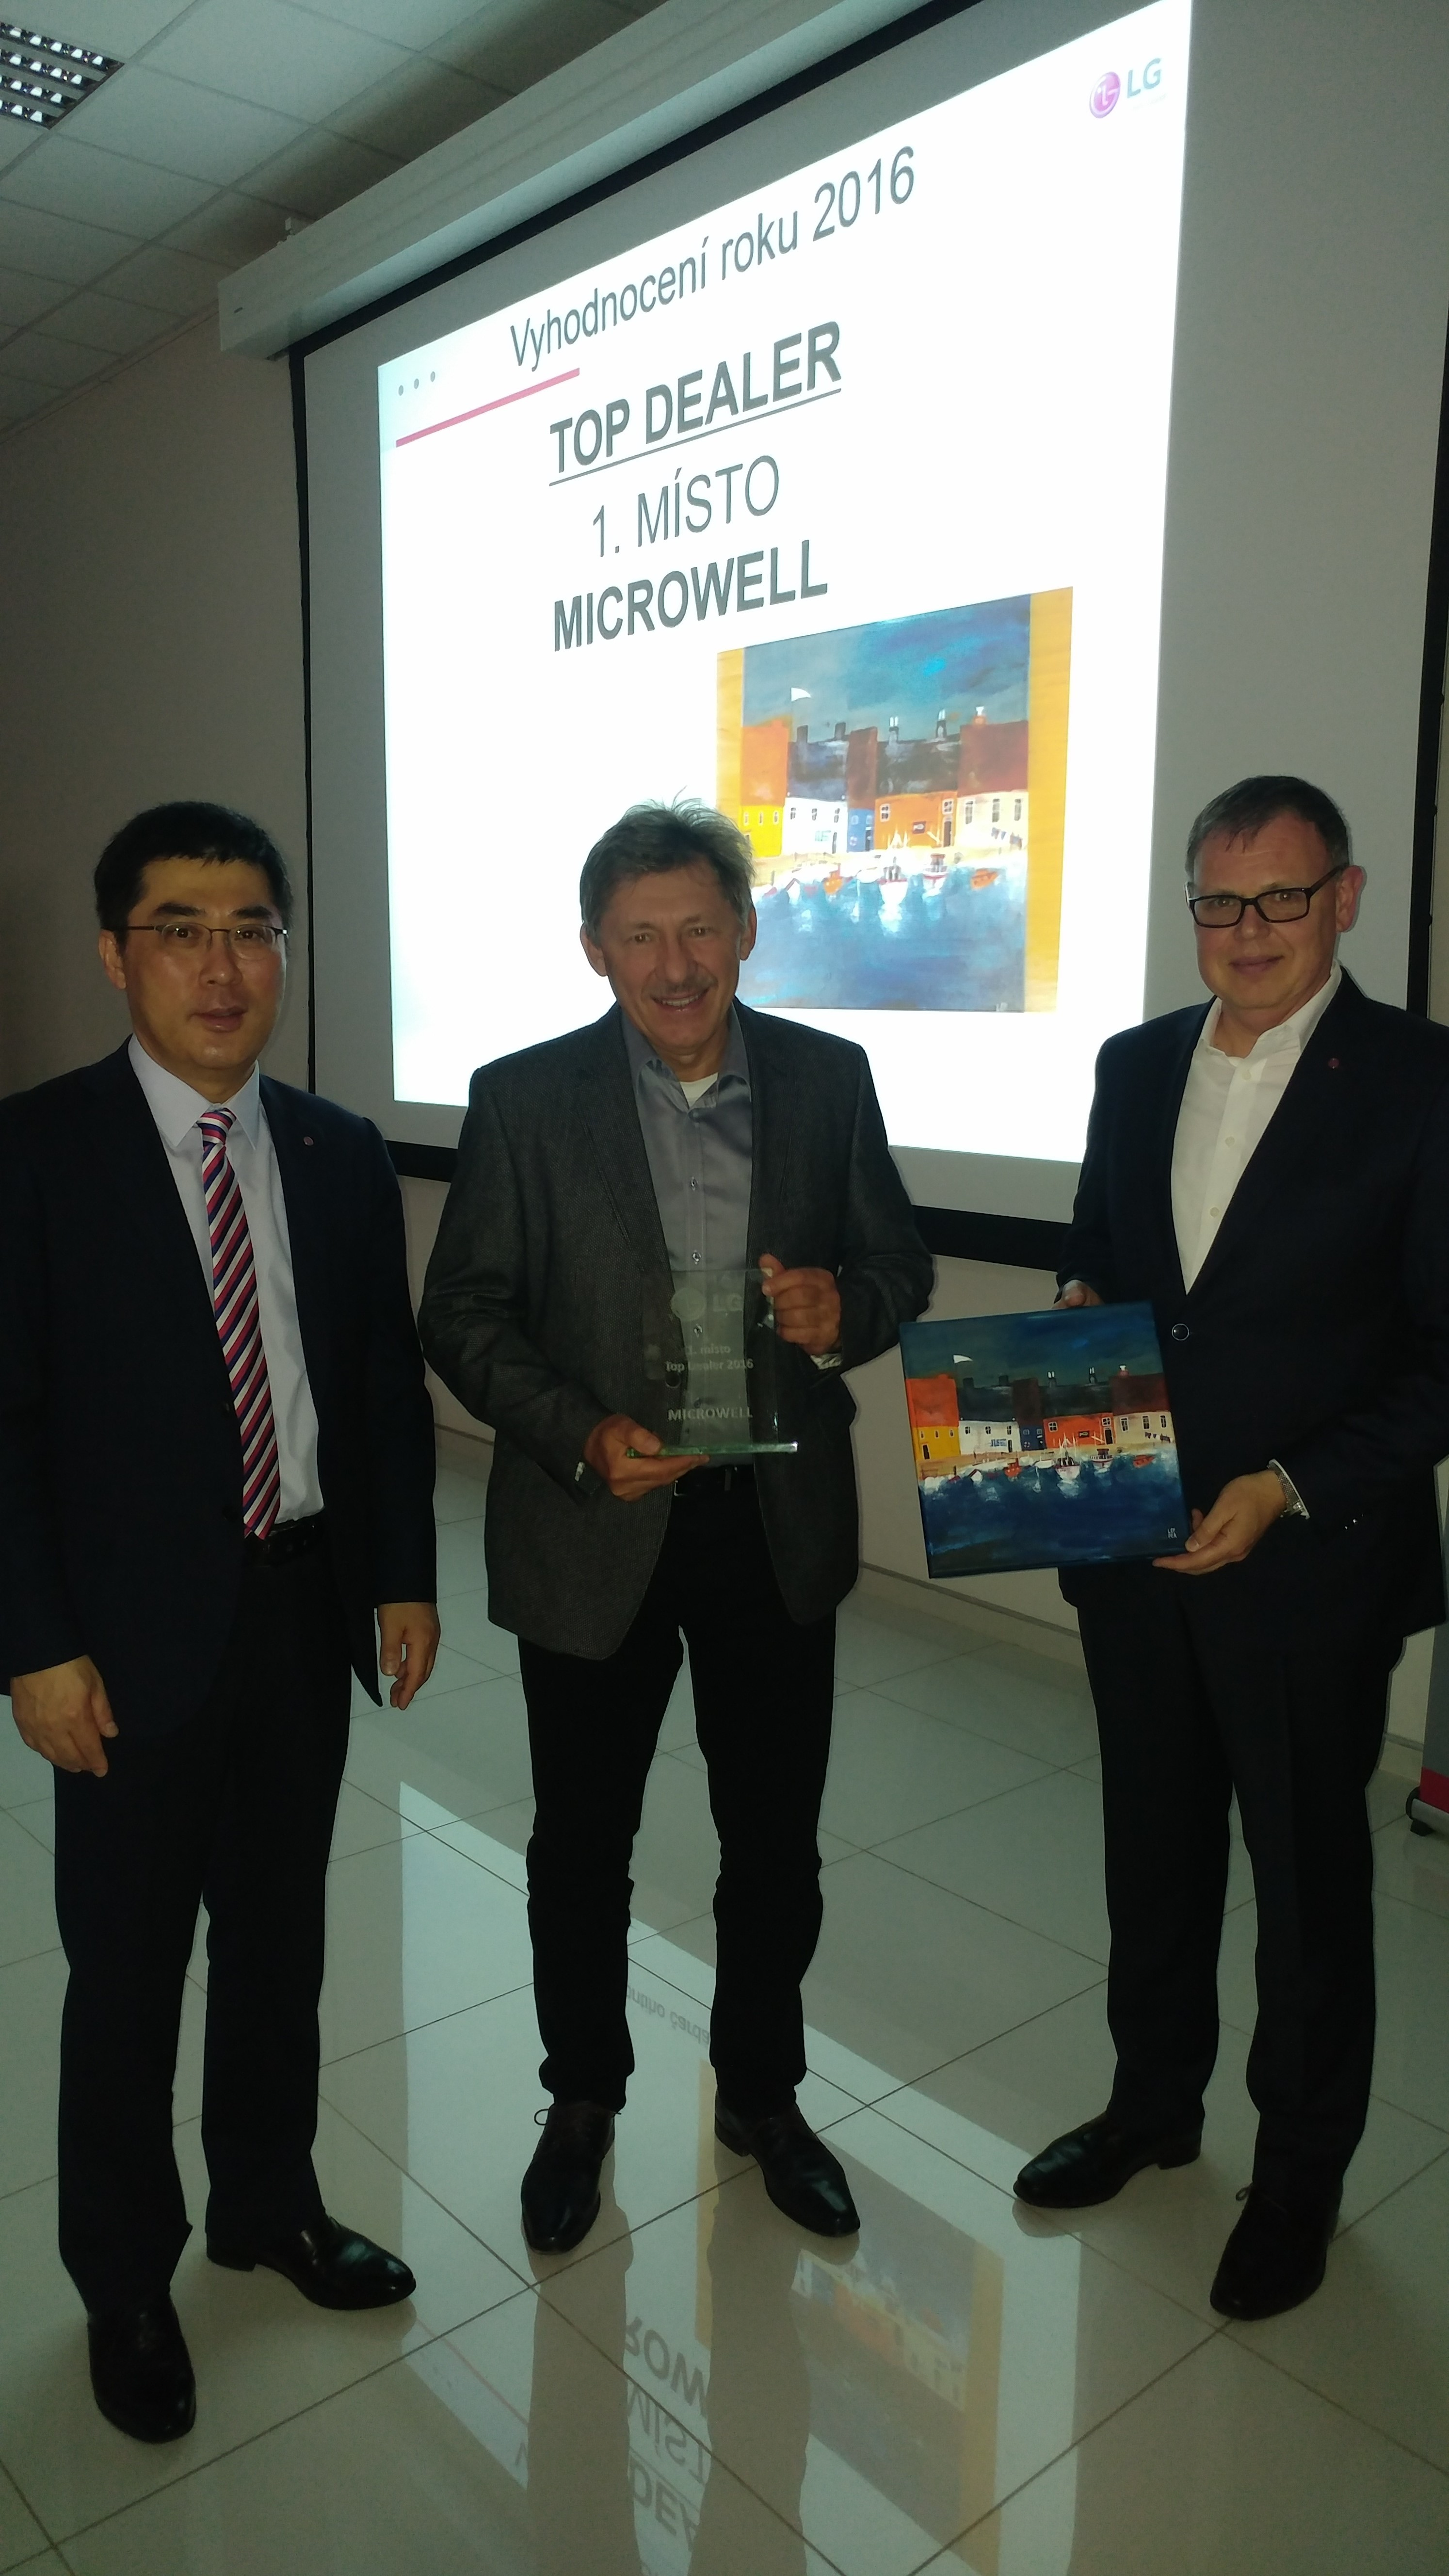 Microwell delares award